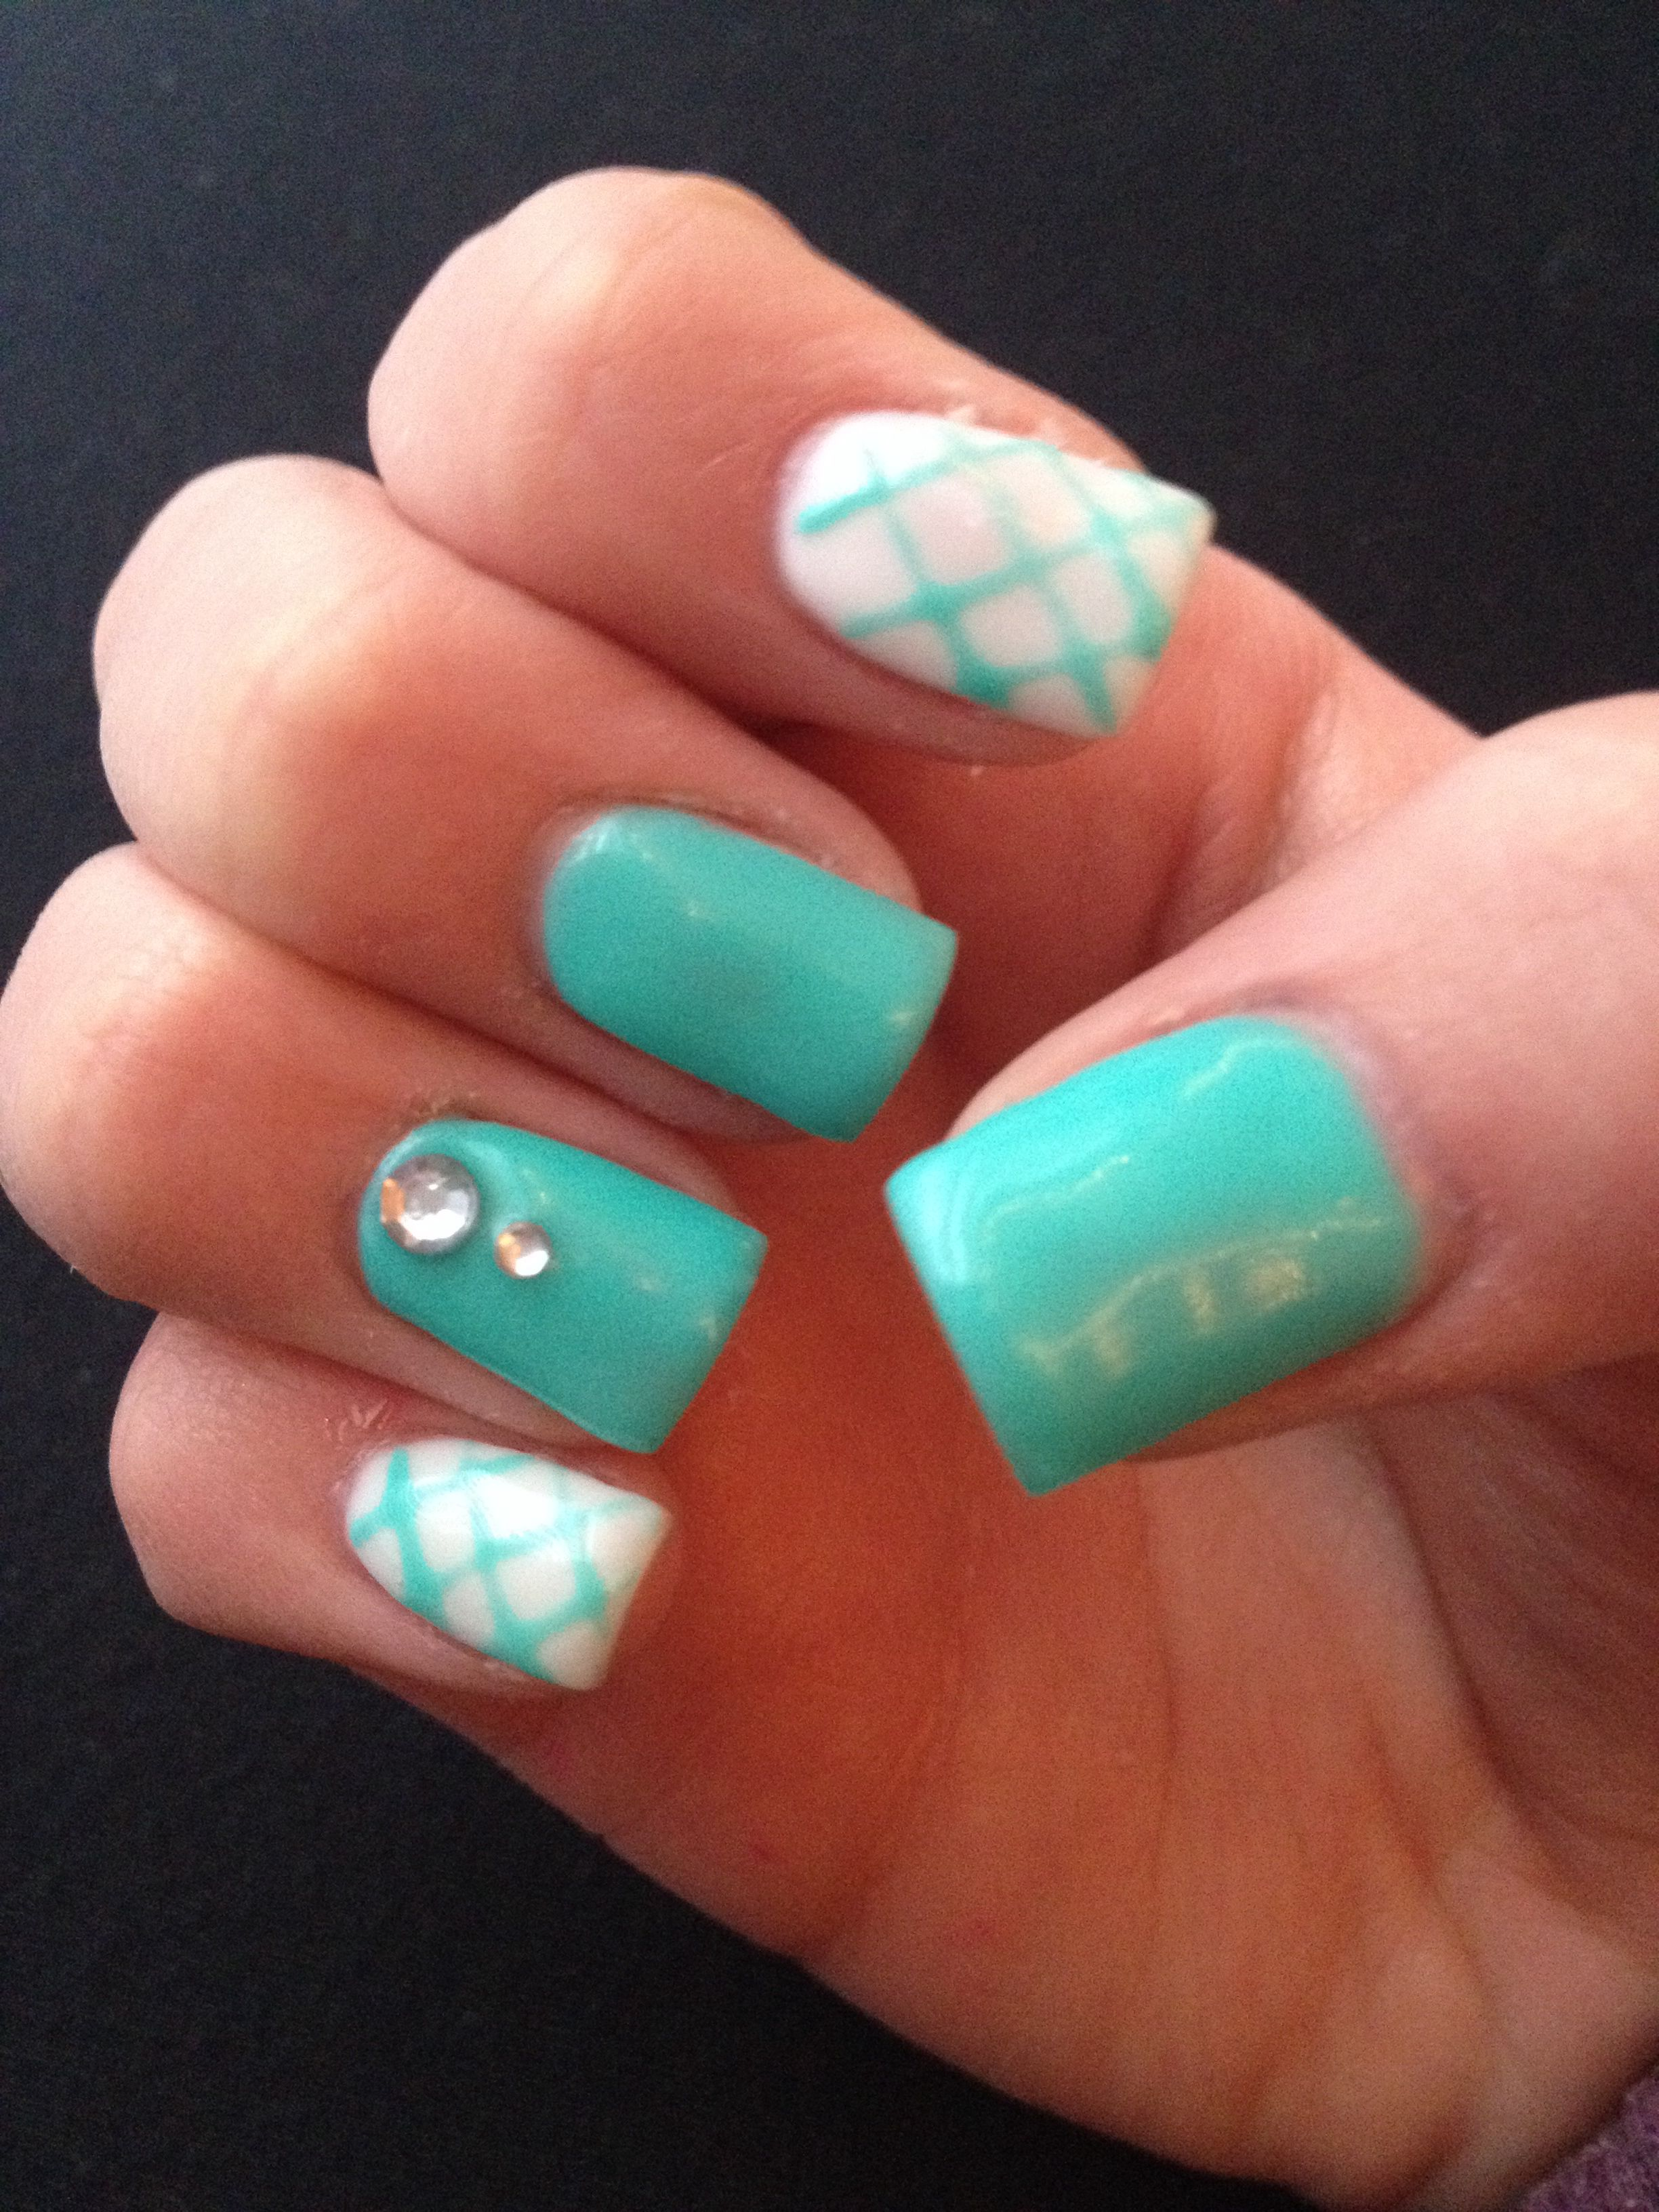 Pin by Julia Pipkins on Nails Nails, Spring nails, Beauty